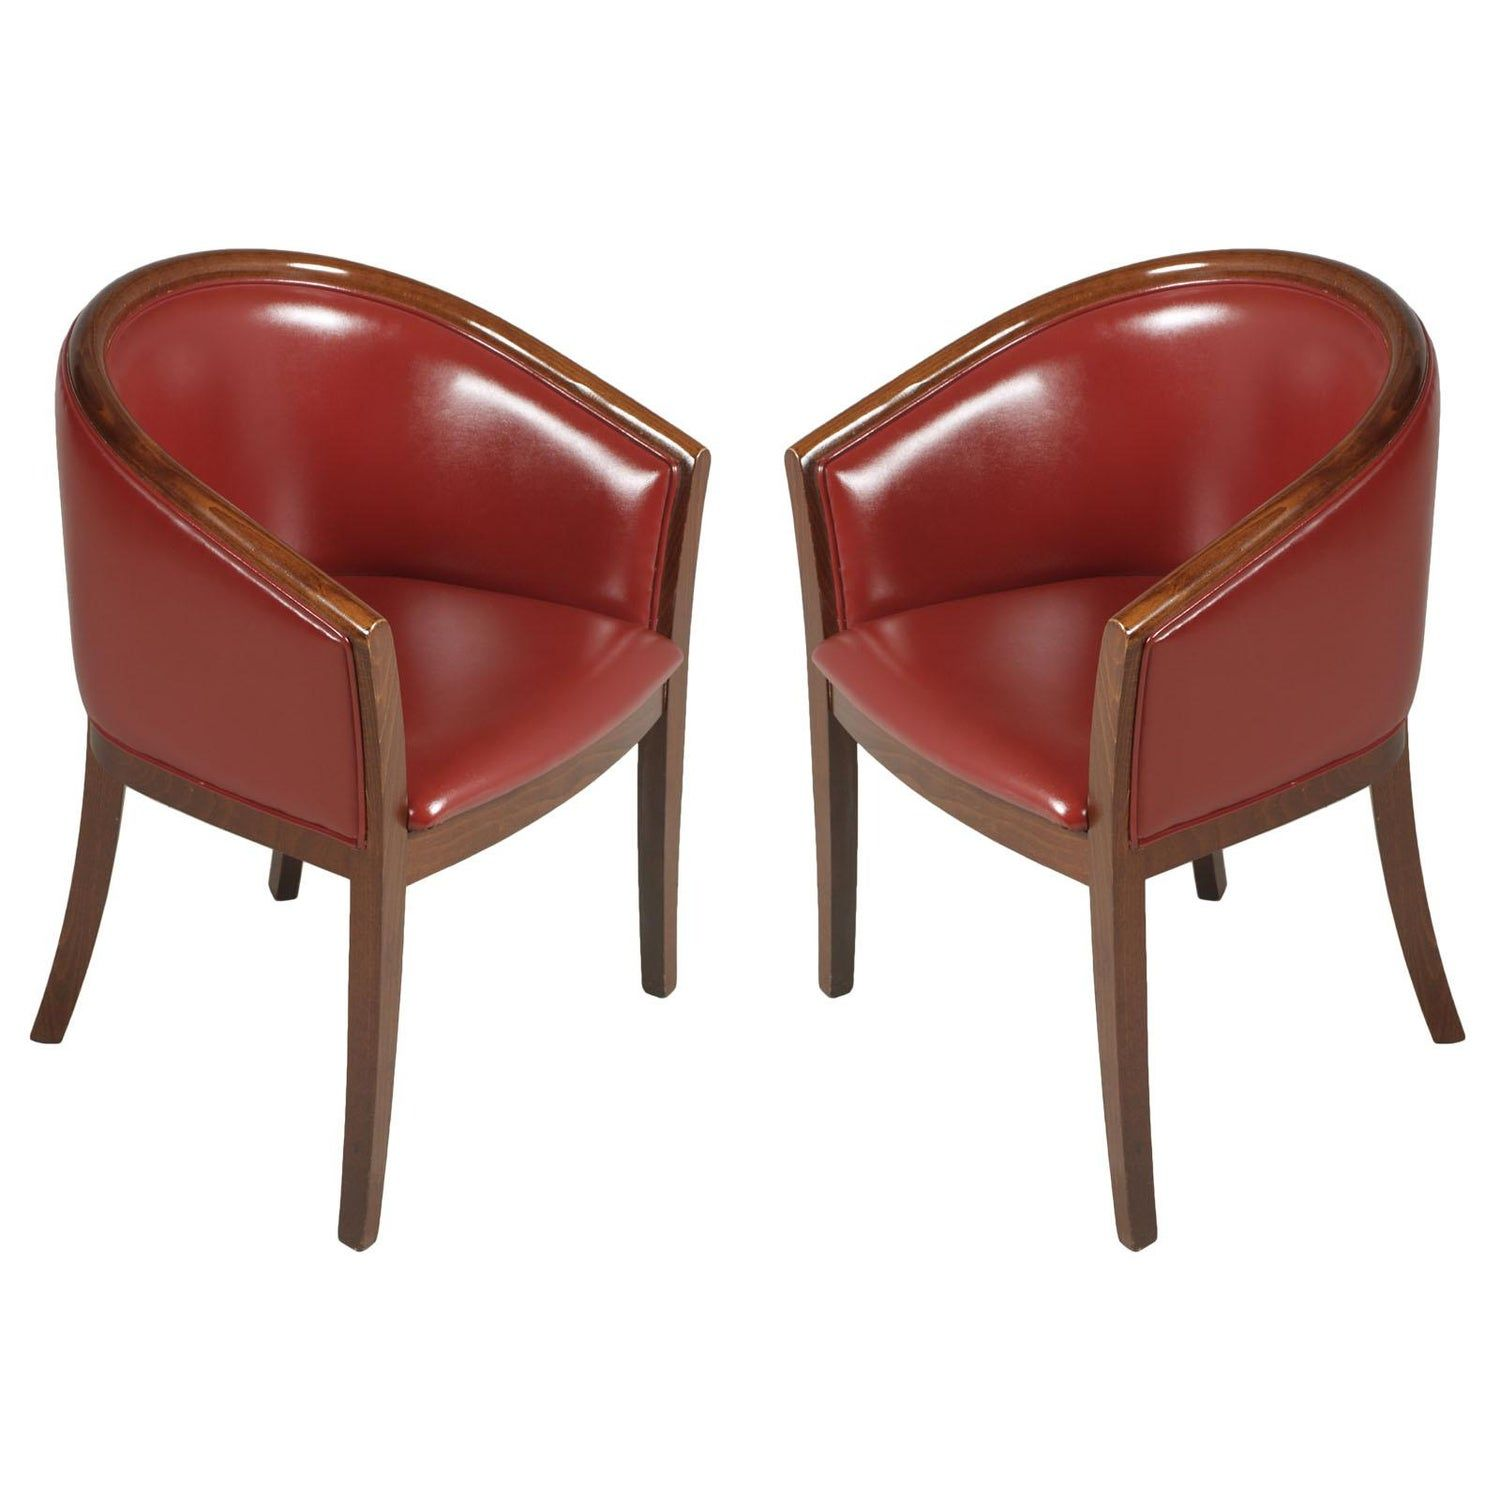 1930s Art Deco Pozzetto Pair Armchairs Loung Chairs Walnut Leather Bordeaux Red Armchair Chair Leather Chair